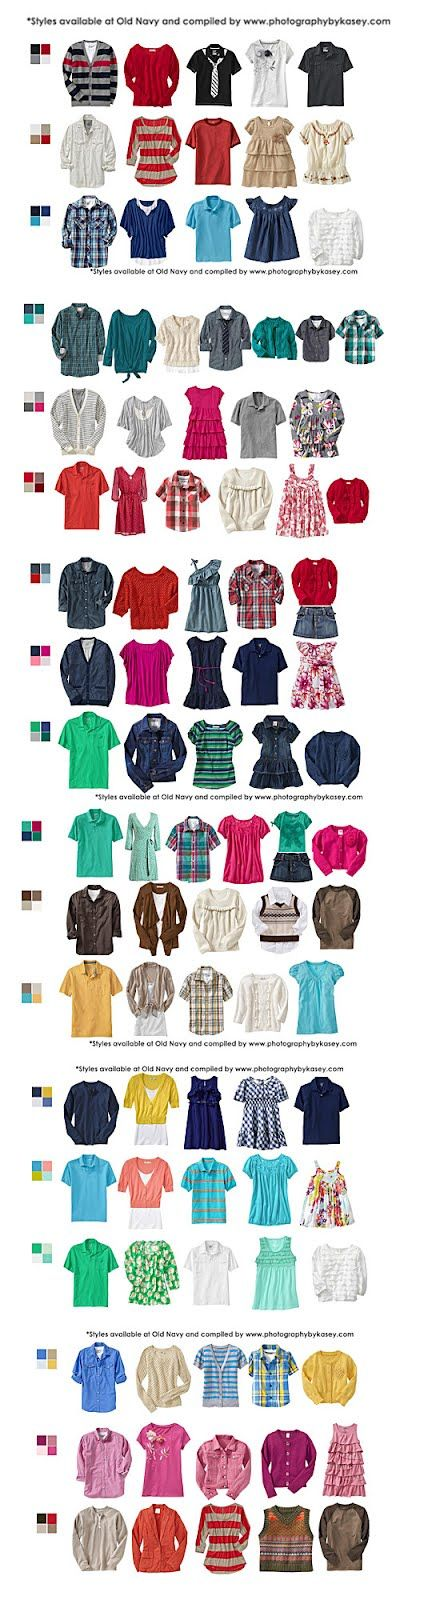 What to Wear-Clothing Ideas...family color coordinating pallettes.